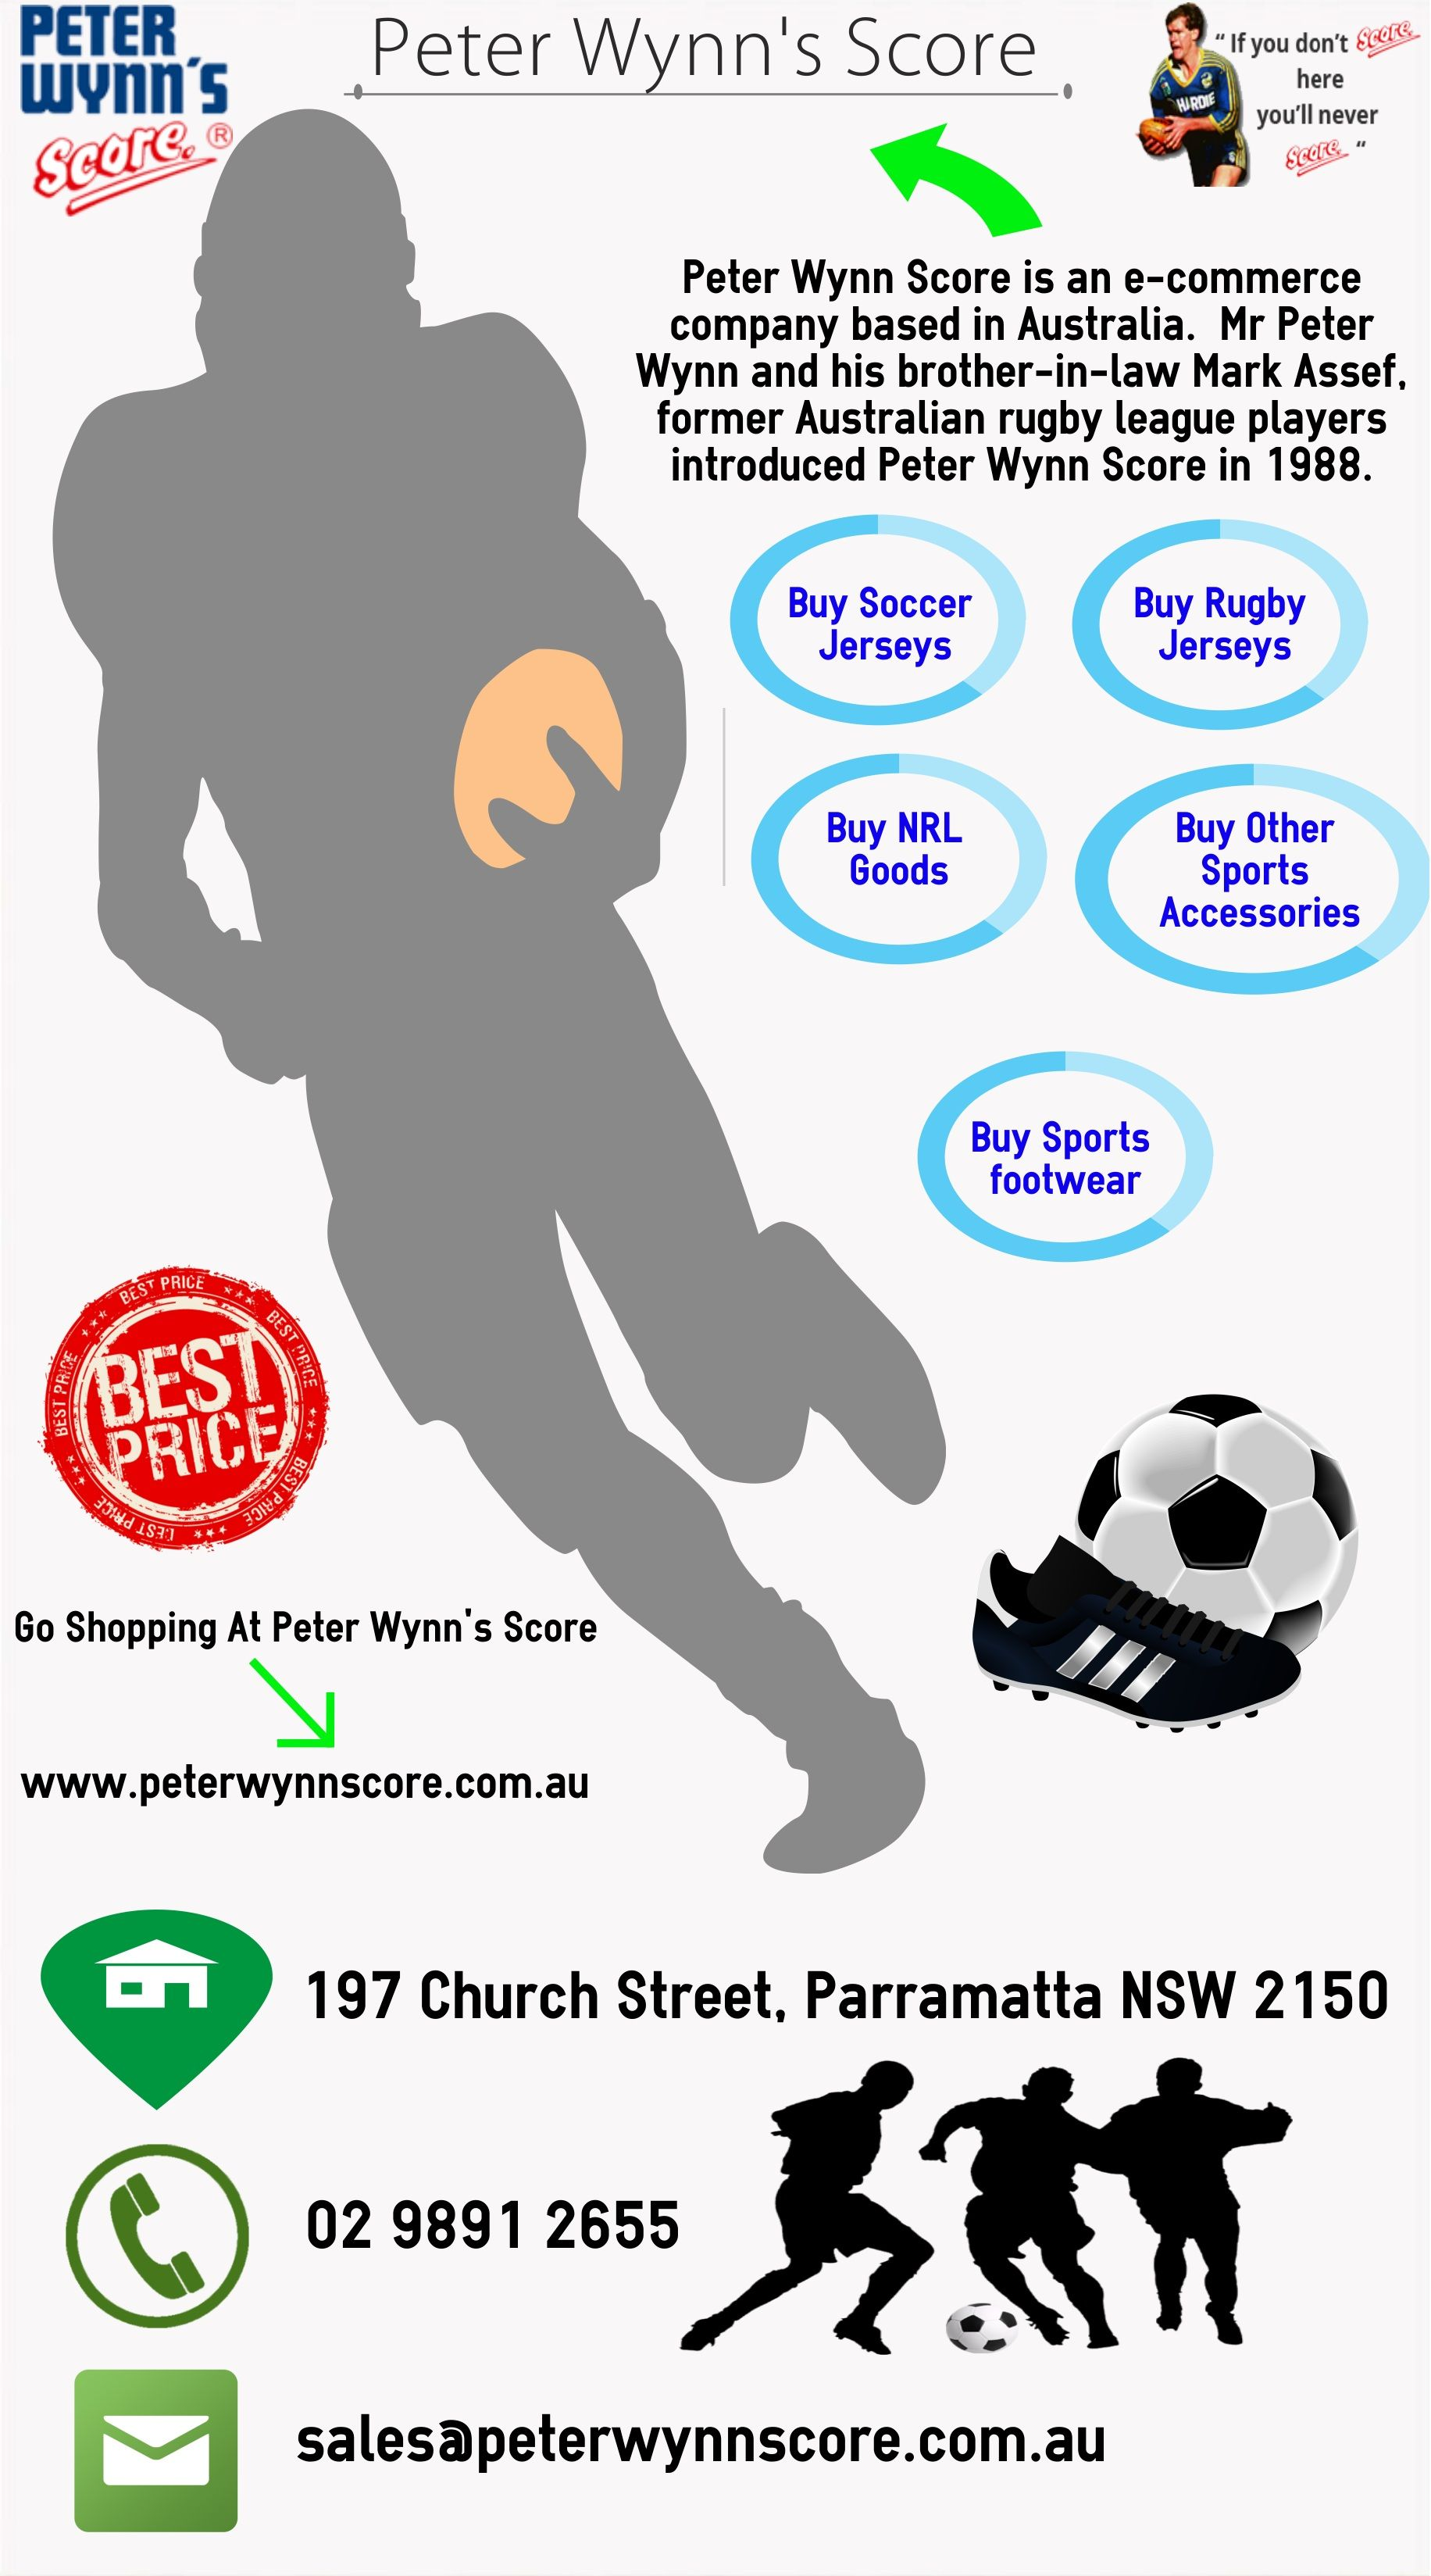 94e5cdd9911 Shop online for all your soccer apparel needs from Peter Wynn s Score  because we have the